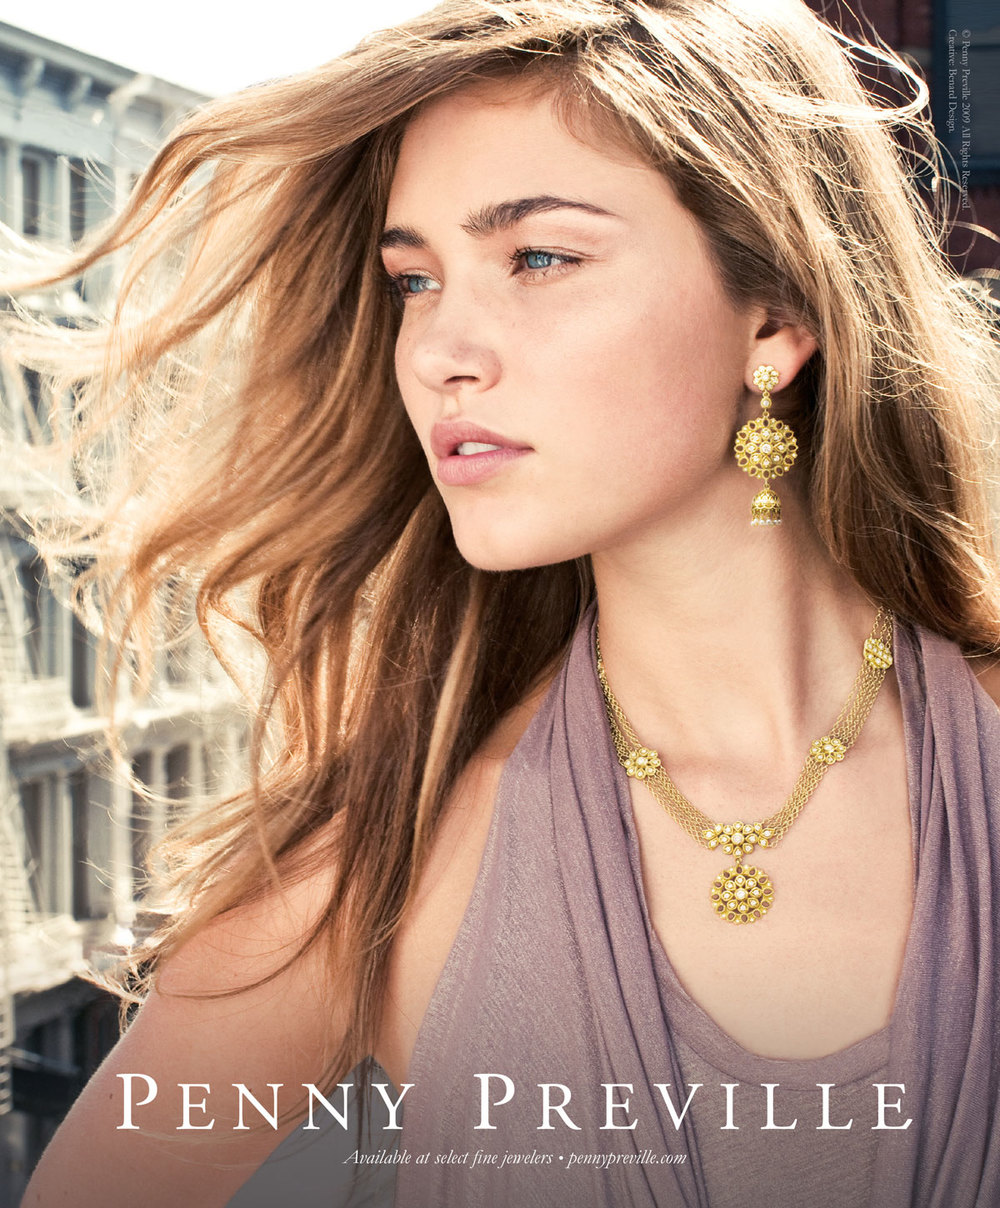 Penny Preville Fine Jewelry Fashion Print   Advertising and Creative Direction by Benard Creative.